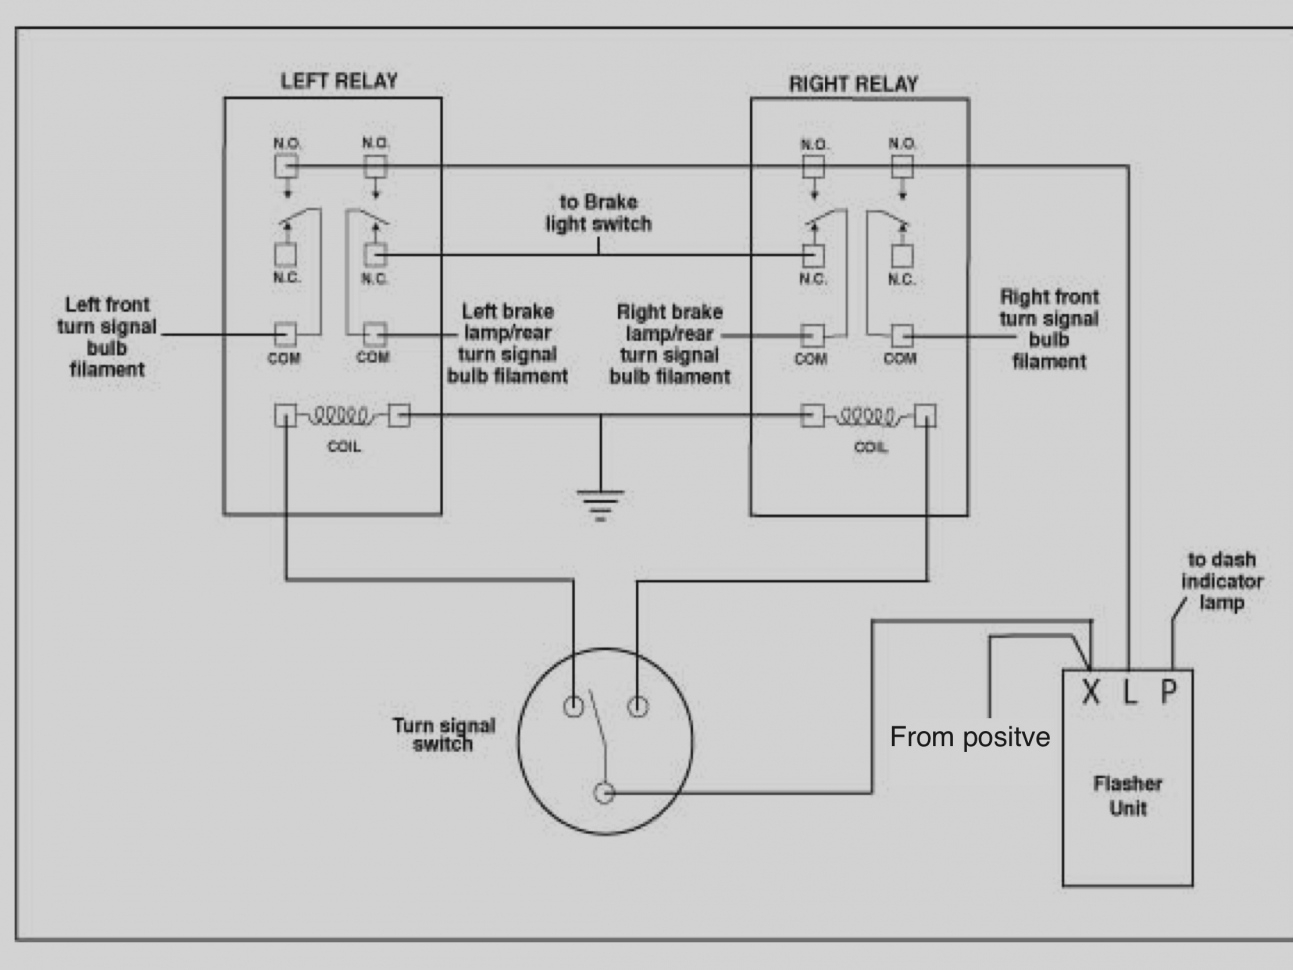 2012 polaris ranger 800 xp wiring diagram